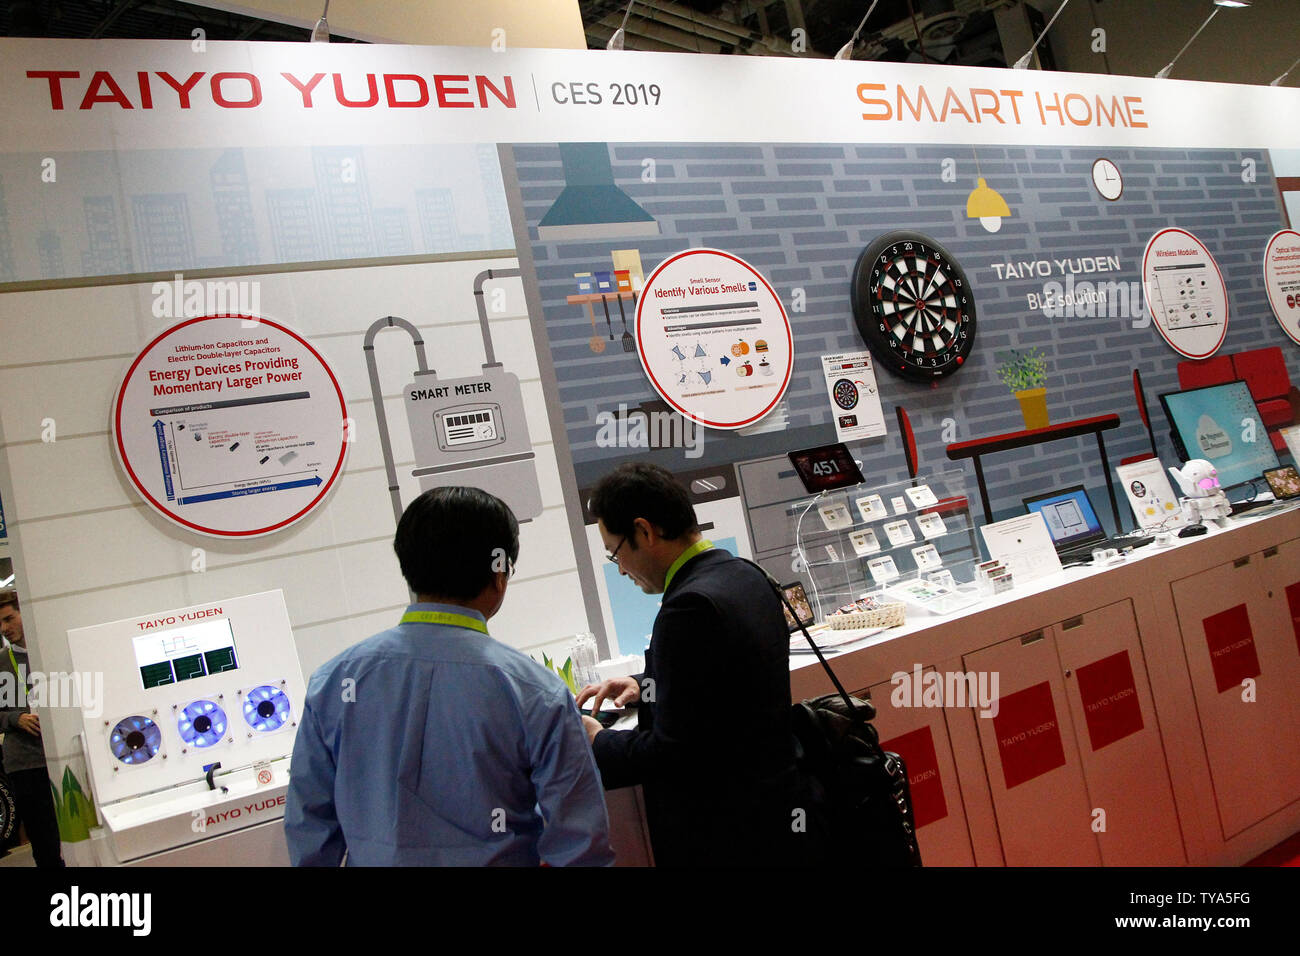 A view of the Taiyo Yuden booth on display during the 2019 International CES, at the Sands Convention Center in Las Vegas, Nevada, January 8, 2019. The Japanese materials and electronics company helped pioneer recordable CD technology and now ventures into the Smart Home industry. Photo by James Atoa/UPI - Stock Image